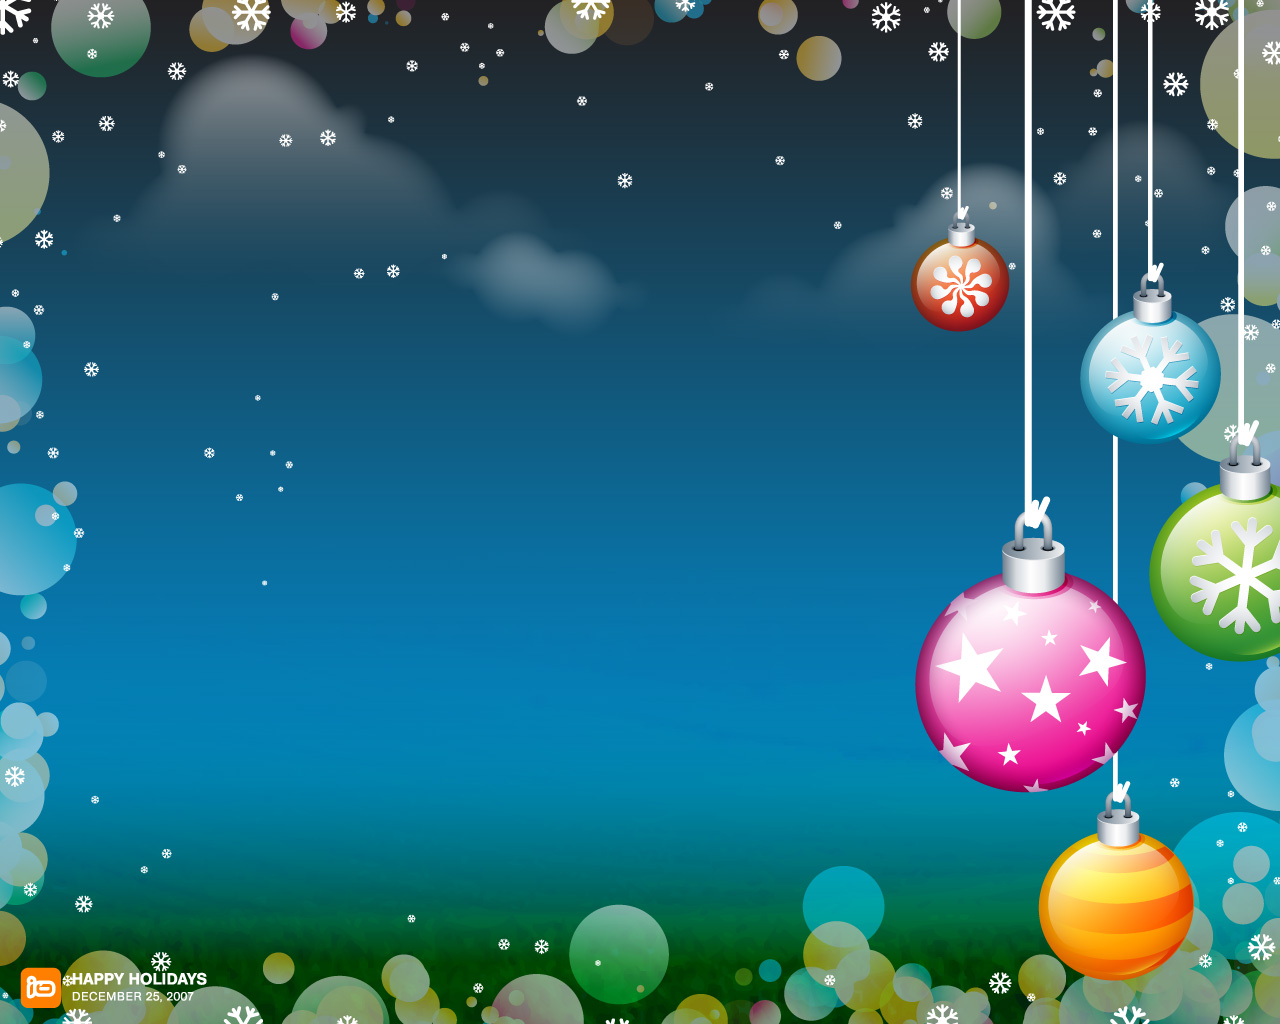 Christmas vector decorations wallpapers free christian for Christmas decorations images